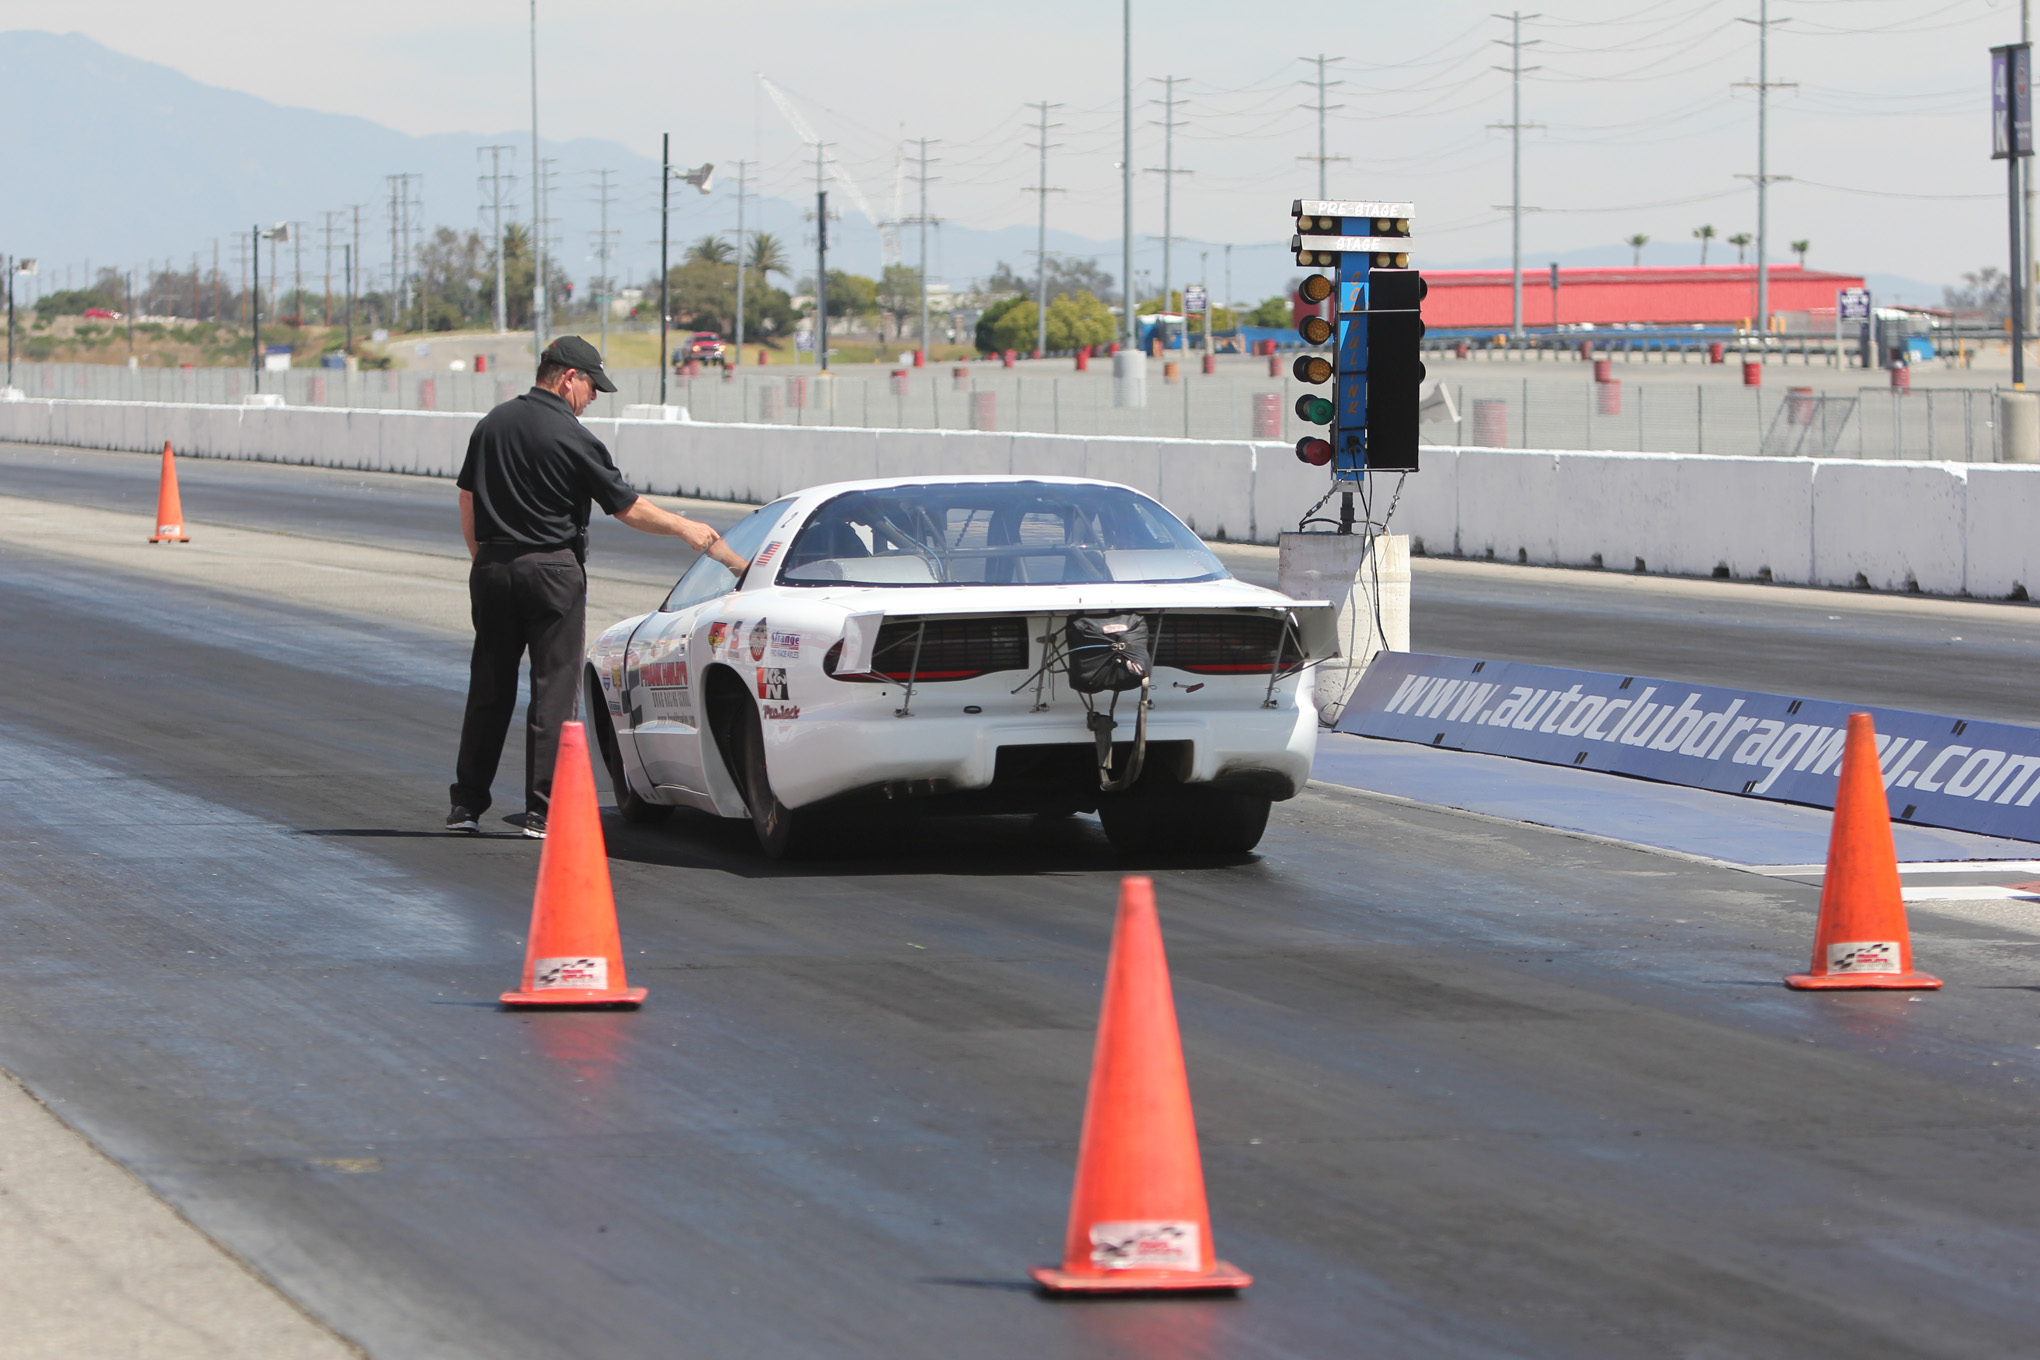 You are going to learn that the most important area in drag racing is where the car is staged. Hawley will help you visualize the entire race.